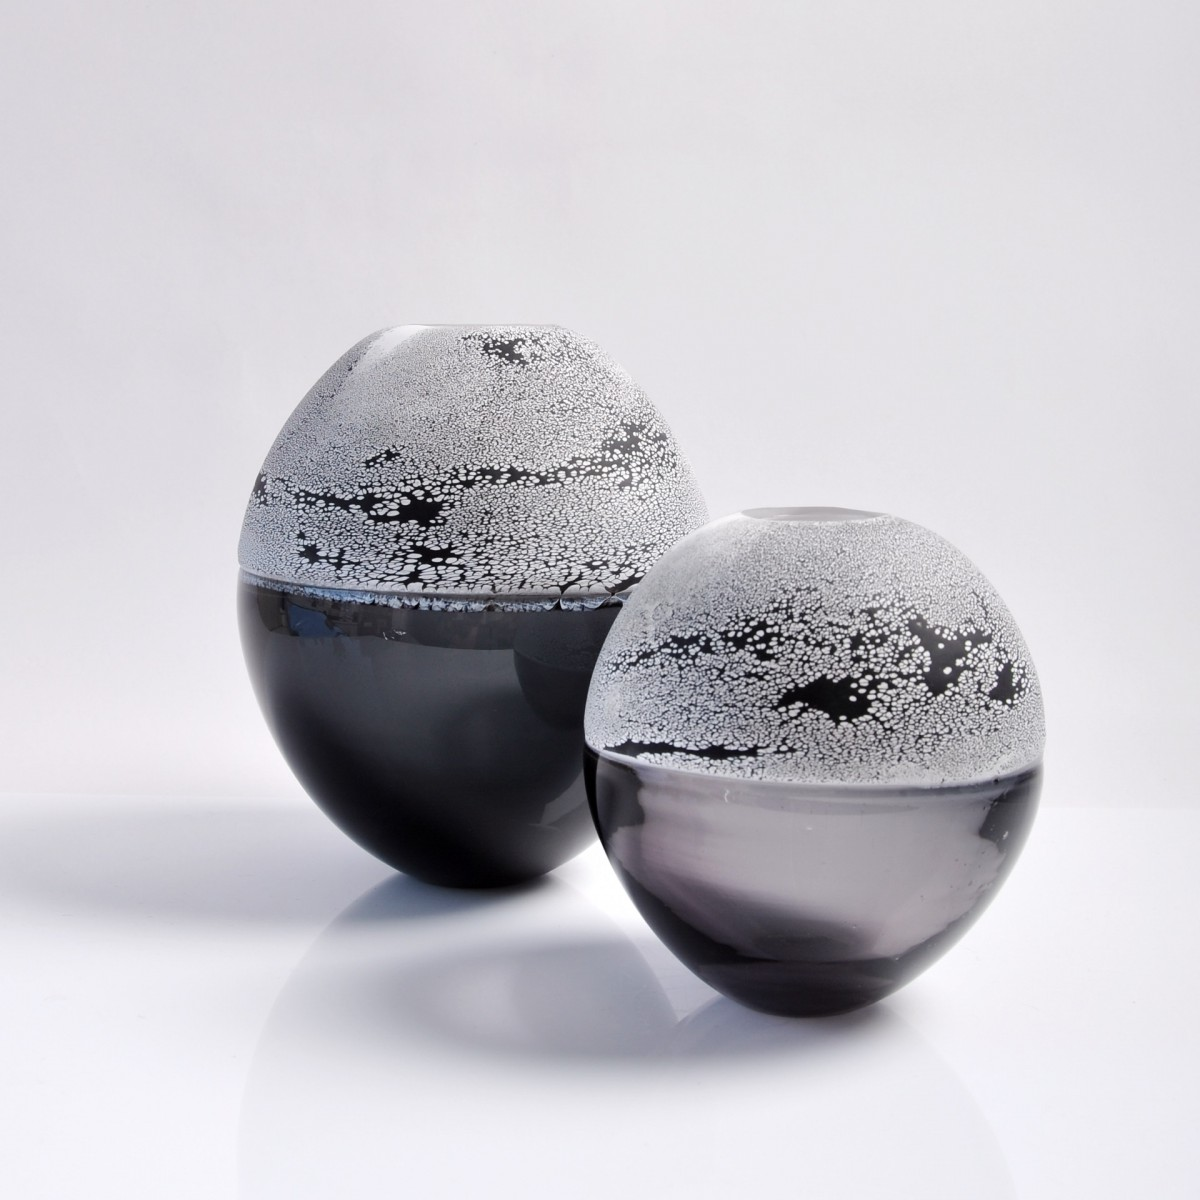 Two glass vases with grey bottom halves and black and white patterned top halves